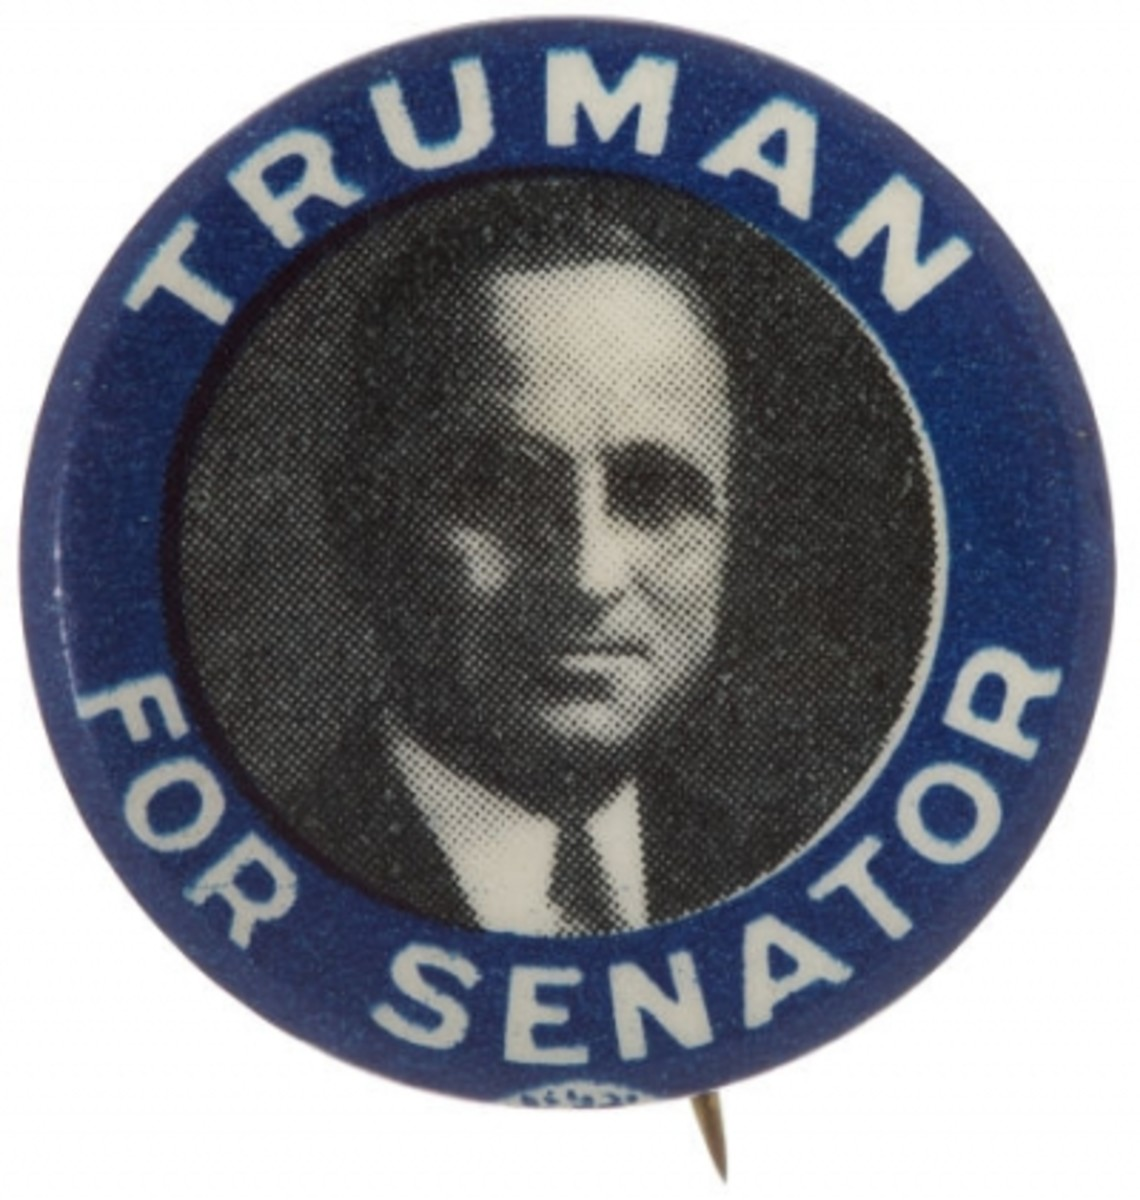 Truman for Senate campaign button